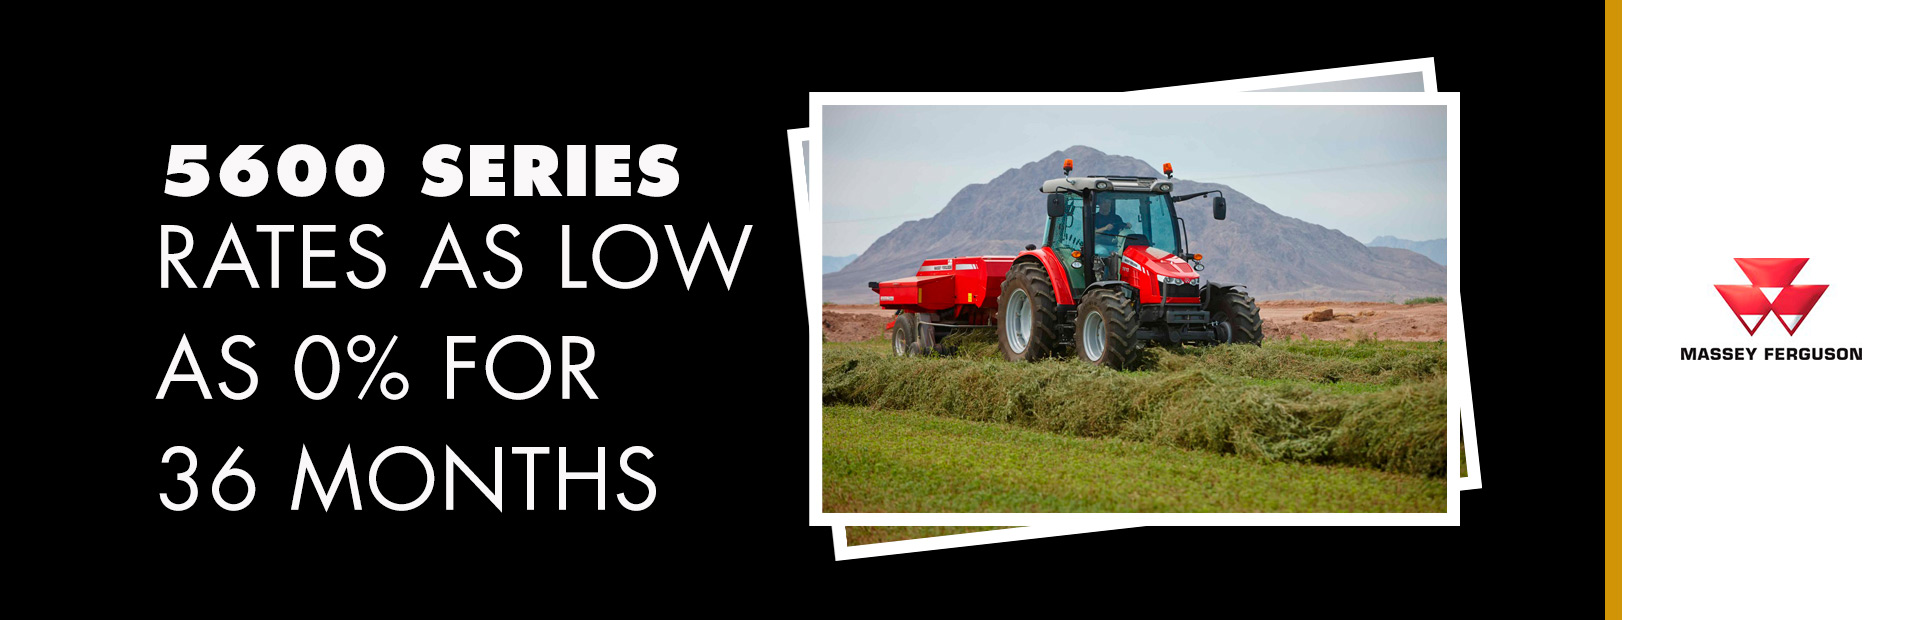 Massey Ferguson: 5600 Series - Rates as low as 0% for 36 Months